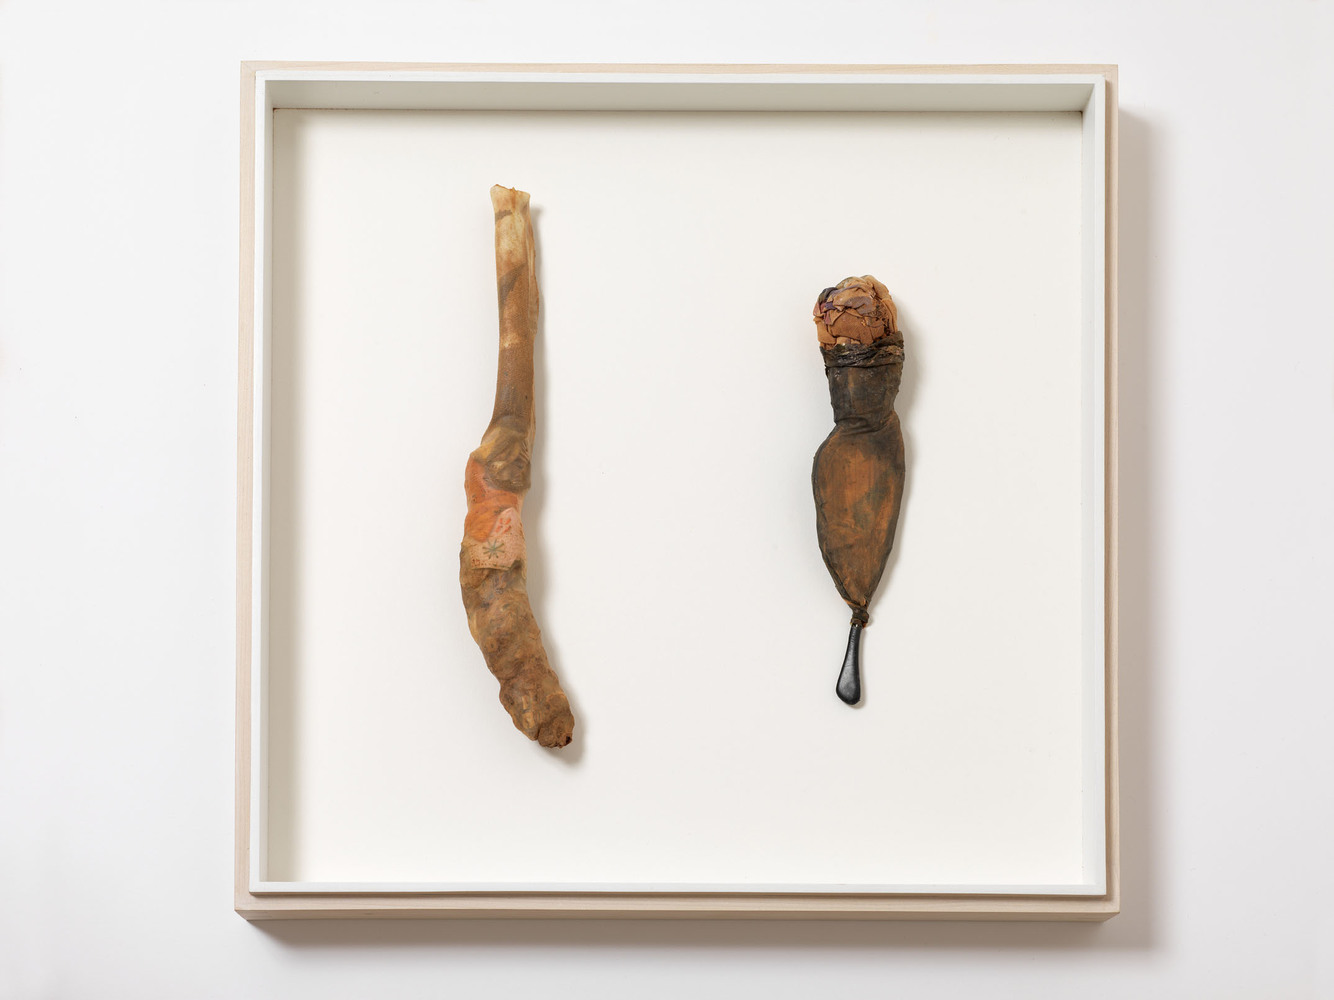 Nicola Ginzel  Selected Transformed Objects entrails, dirt, eye glass part, clothing remnants, panty hose